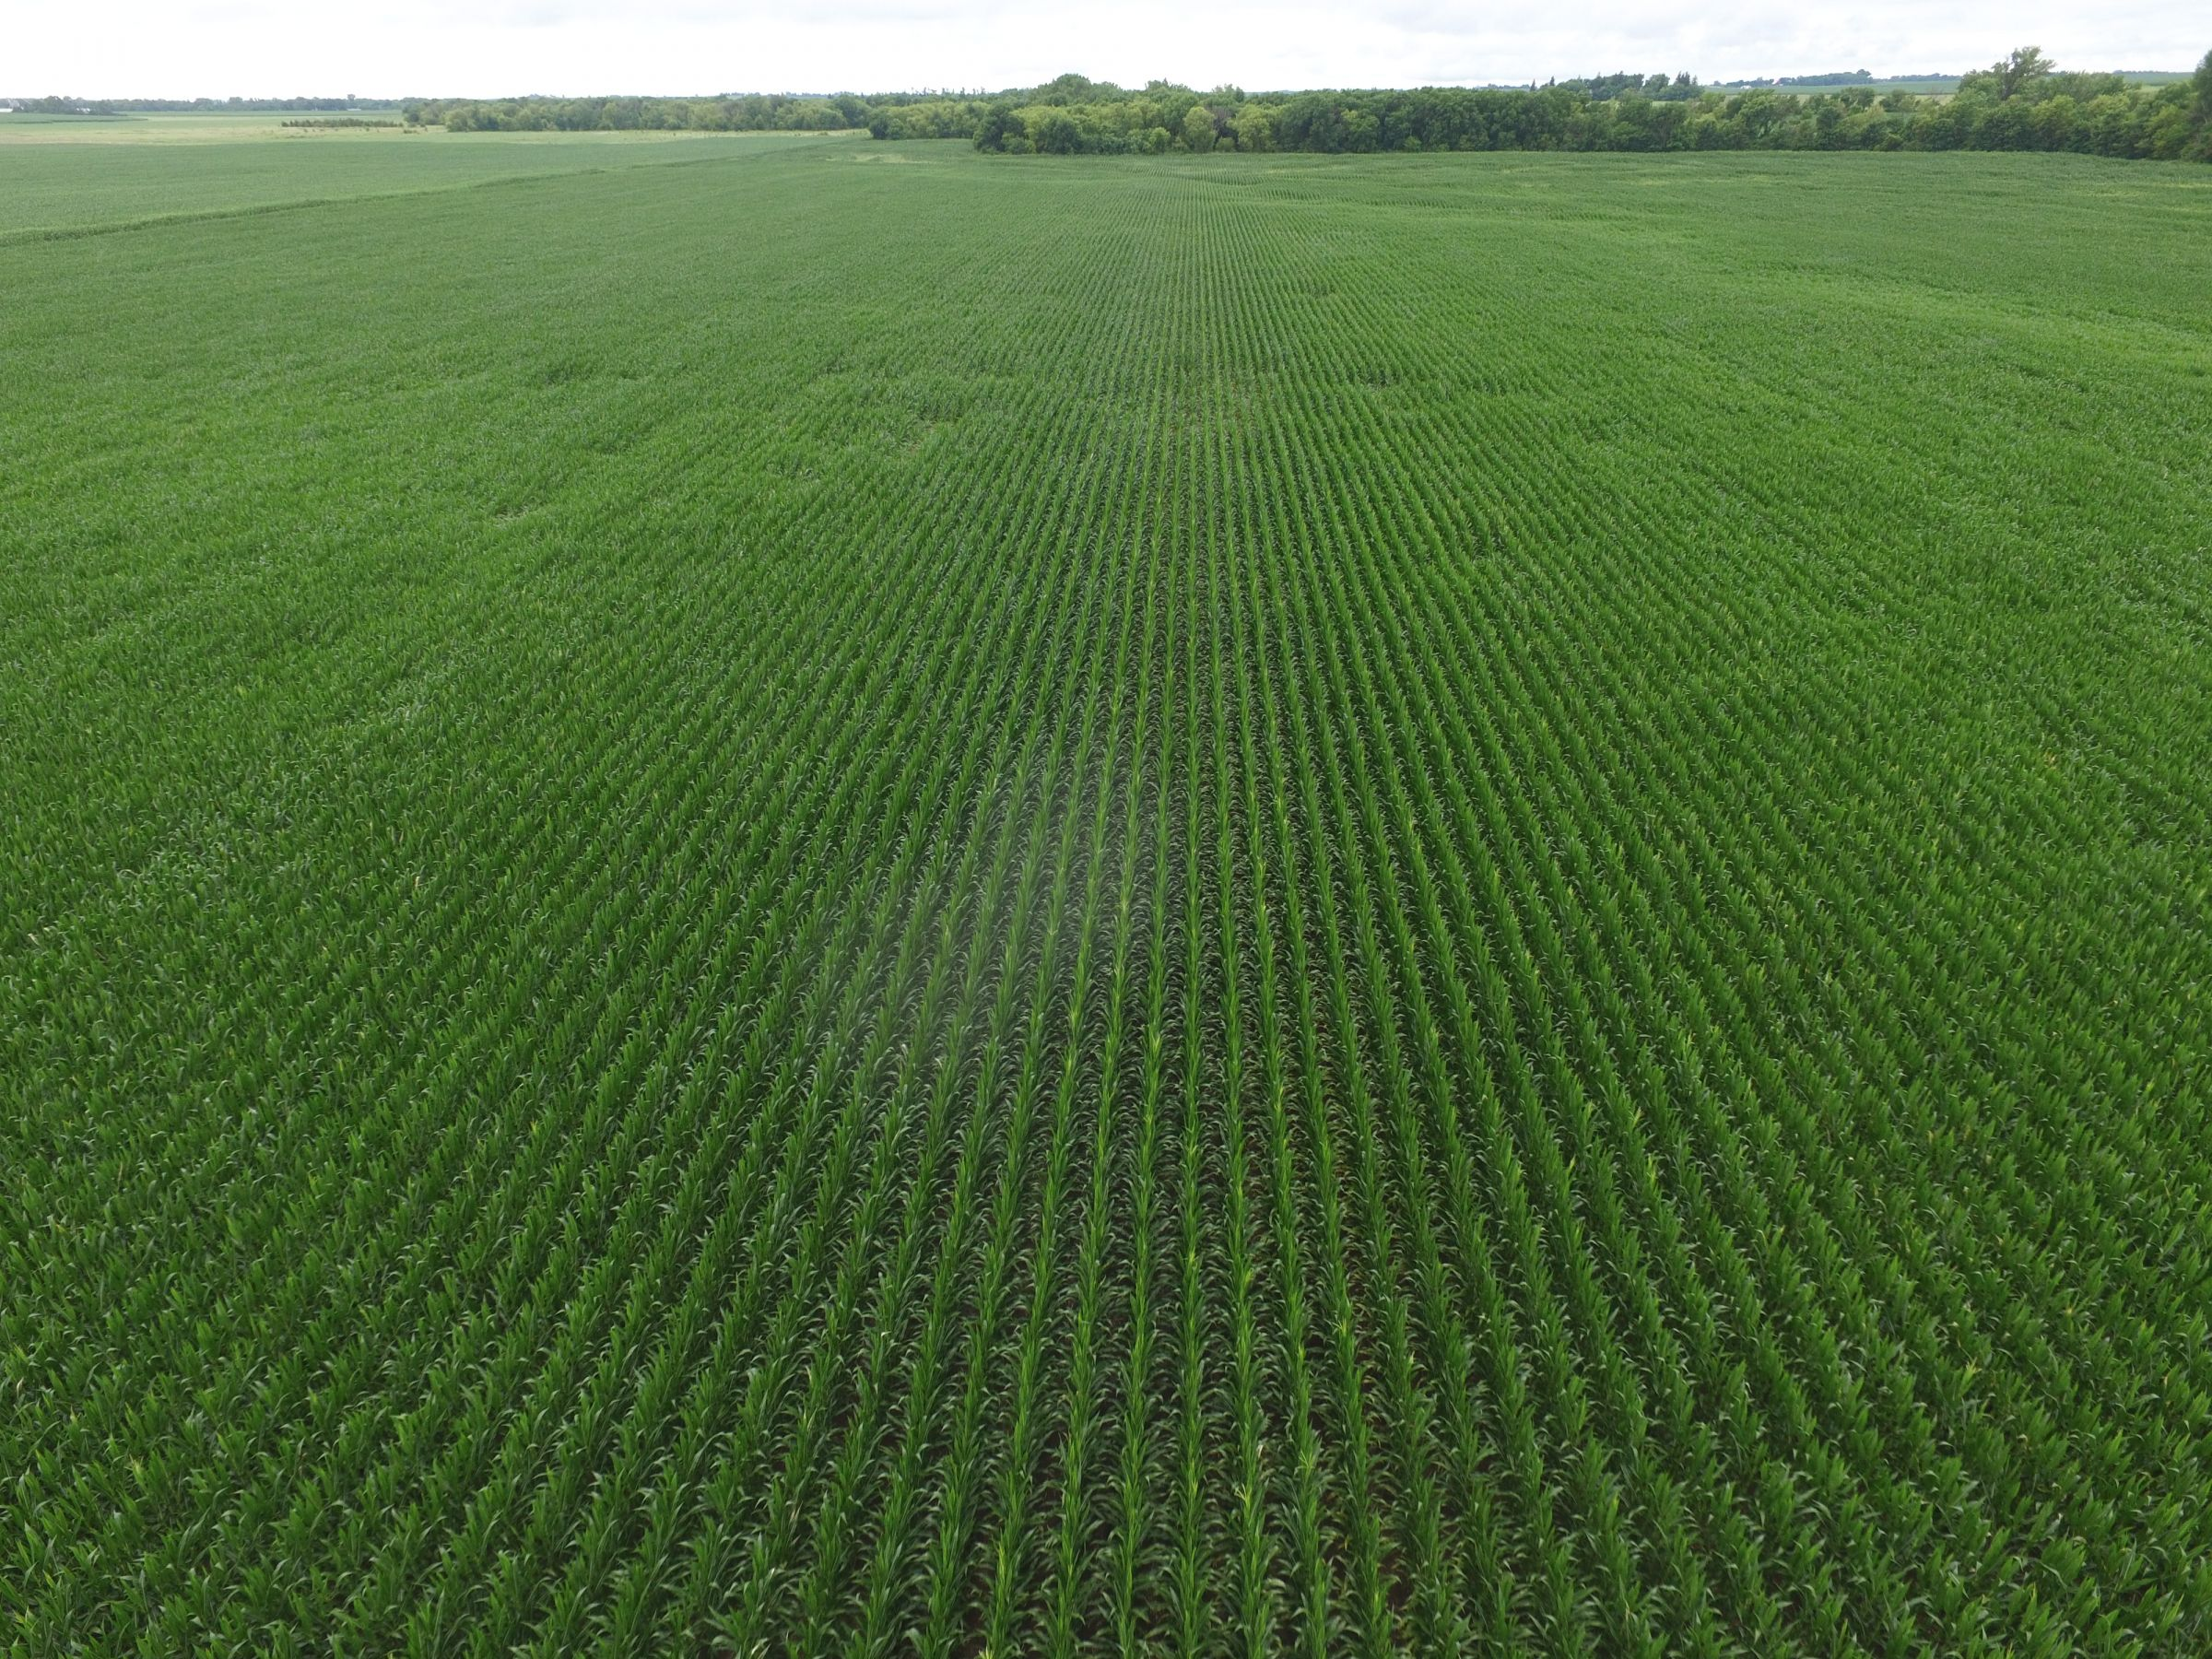 auctions-land-floyd-county-iowa-112-acres-listing-number-15630-11-2021-07-13-192254.JPG